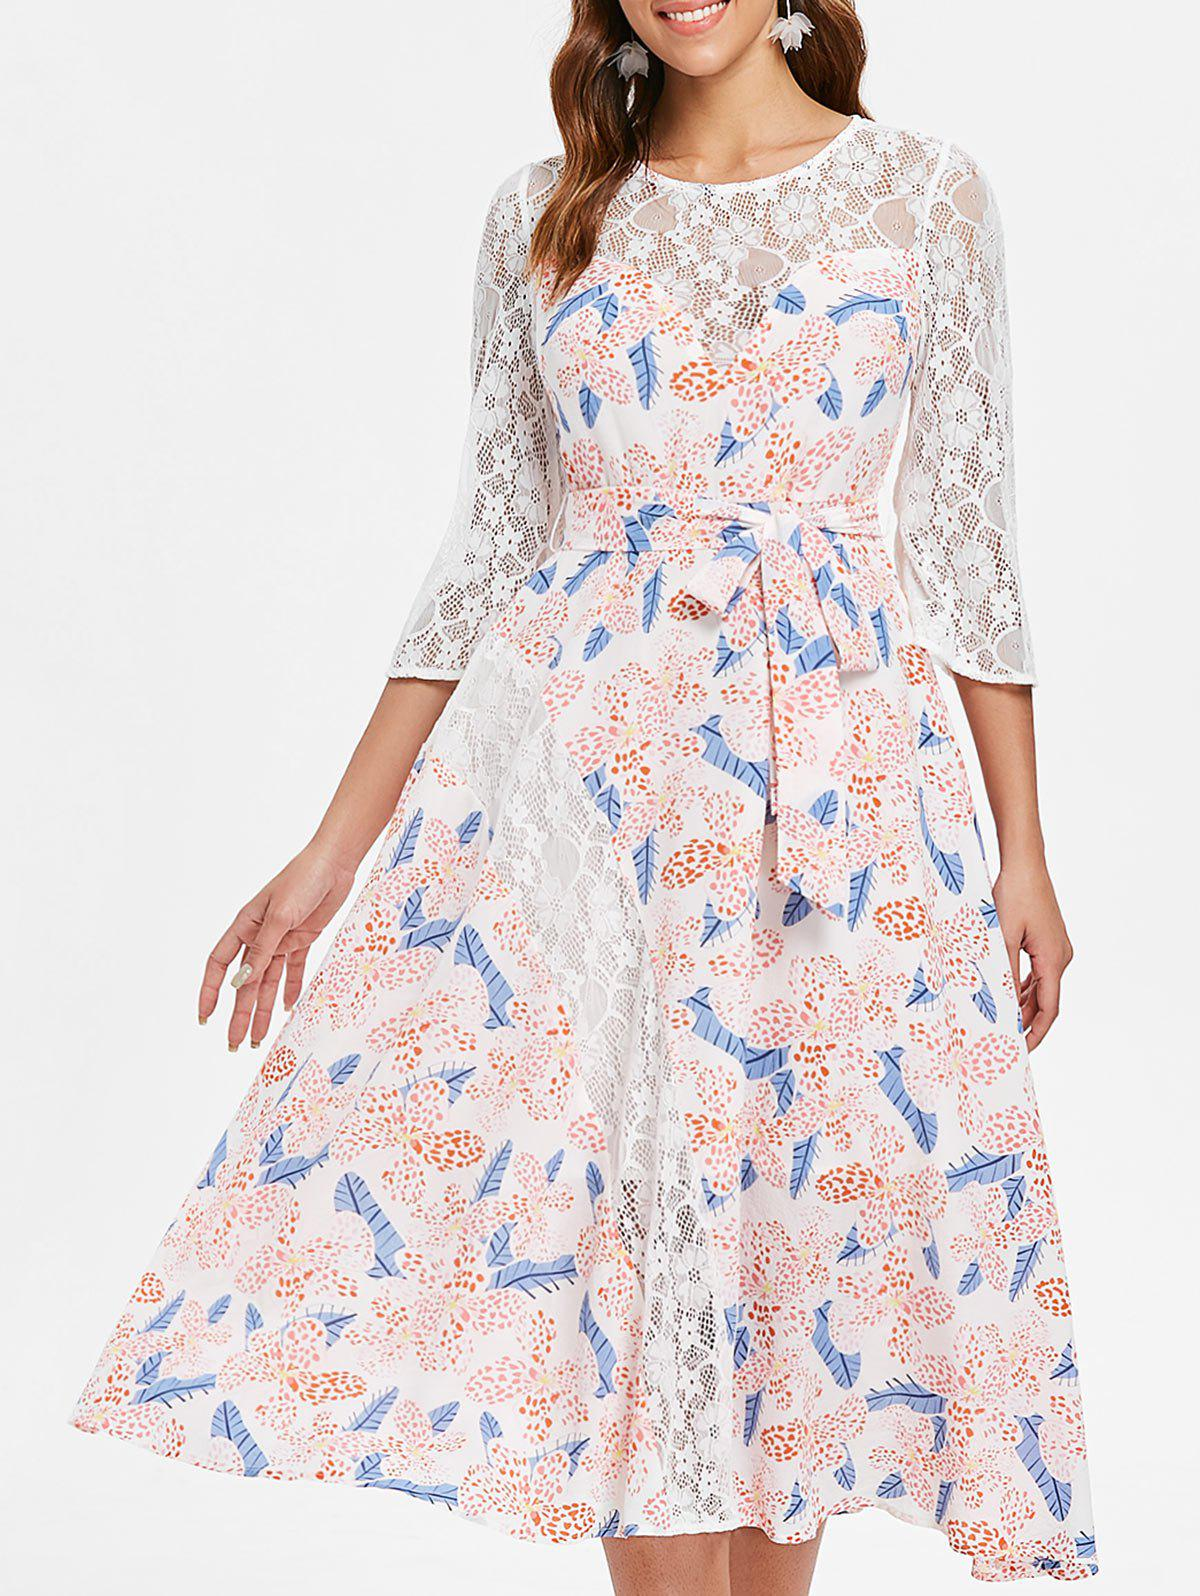 Lace Panel Floral Midi Dress - WHITE S